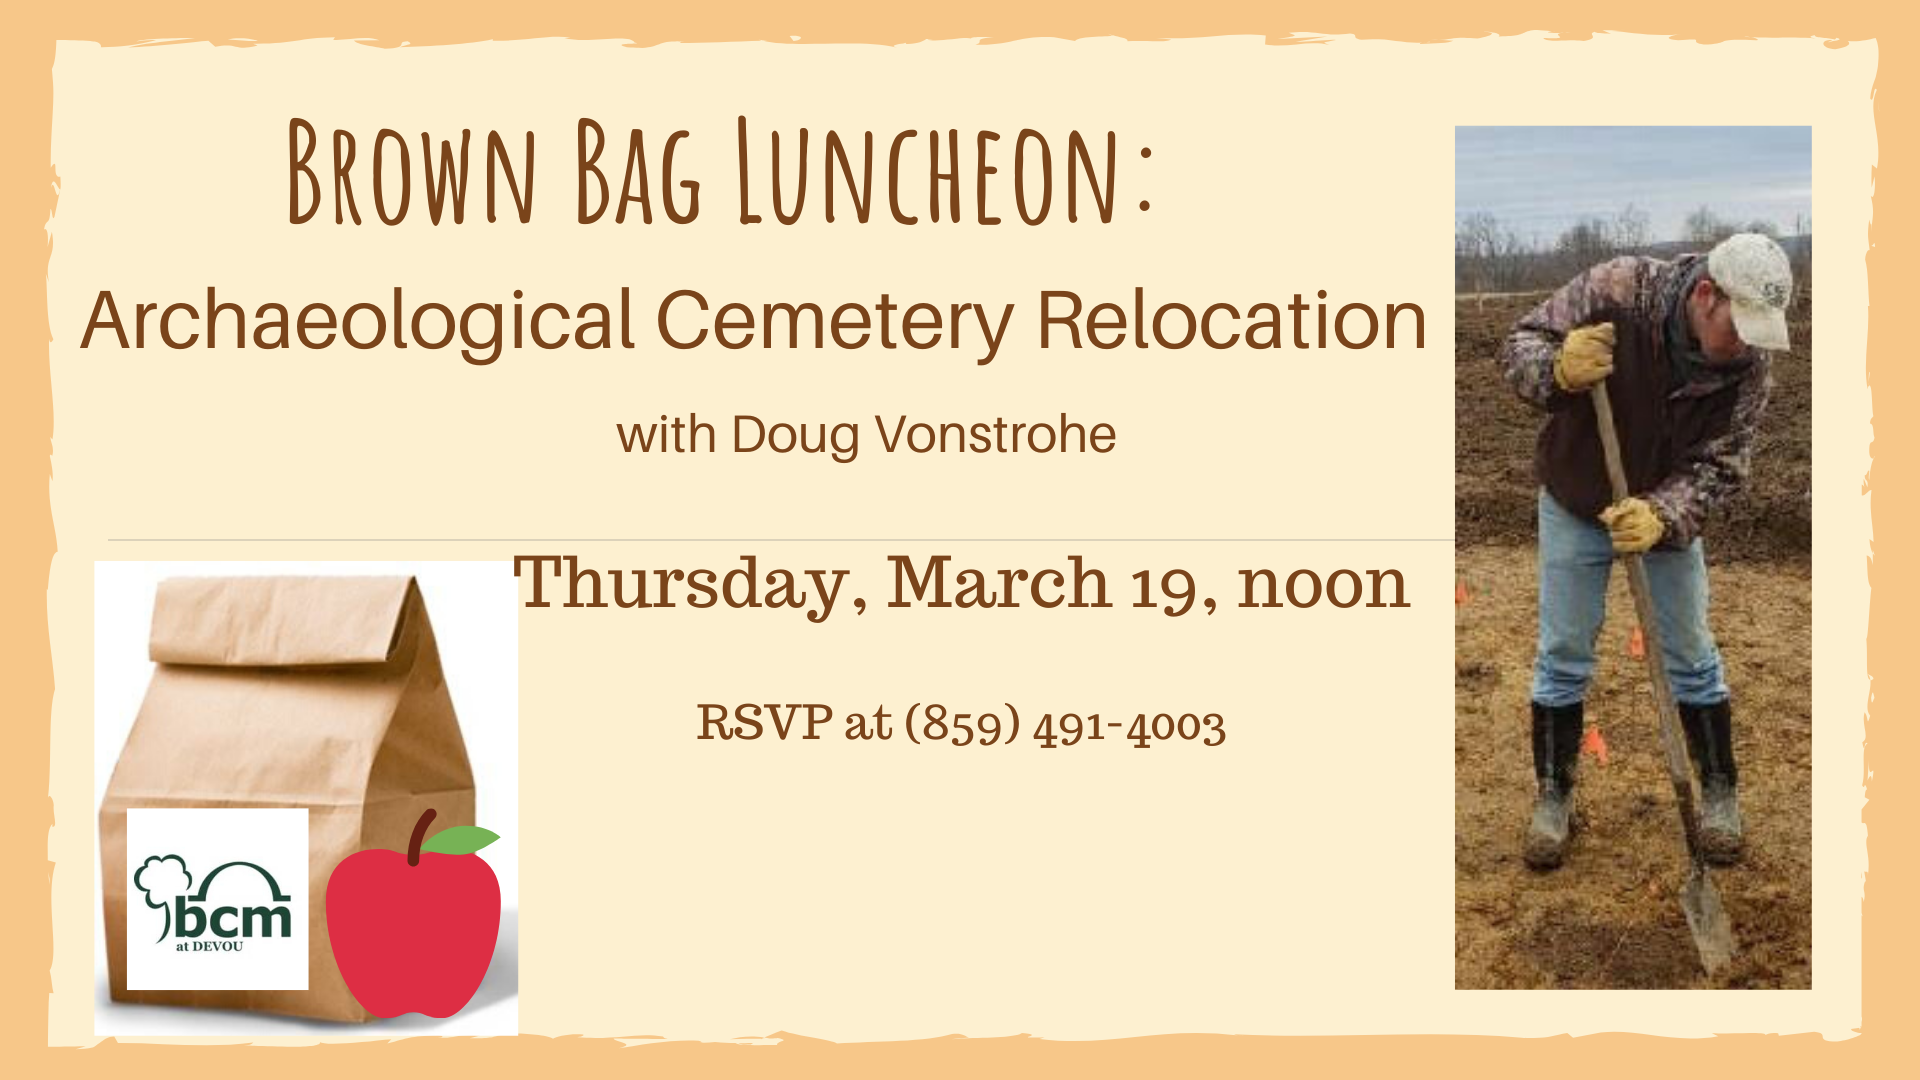 Brown Bag Luncheon Archaeological Cemetery Relocation 3